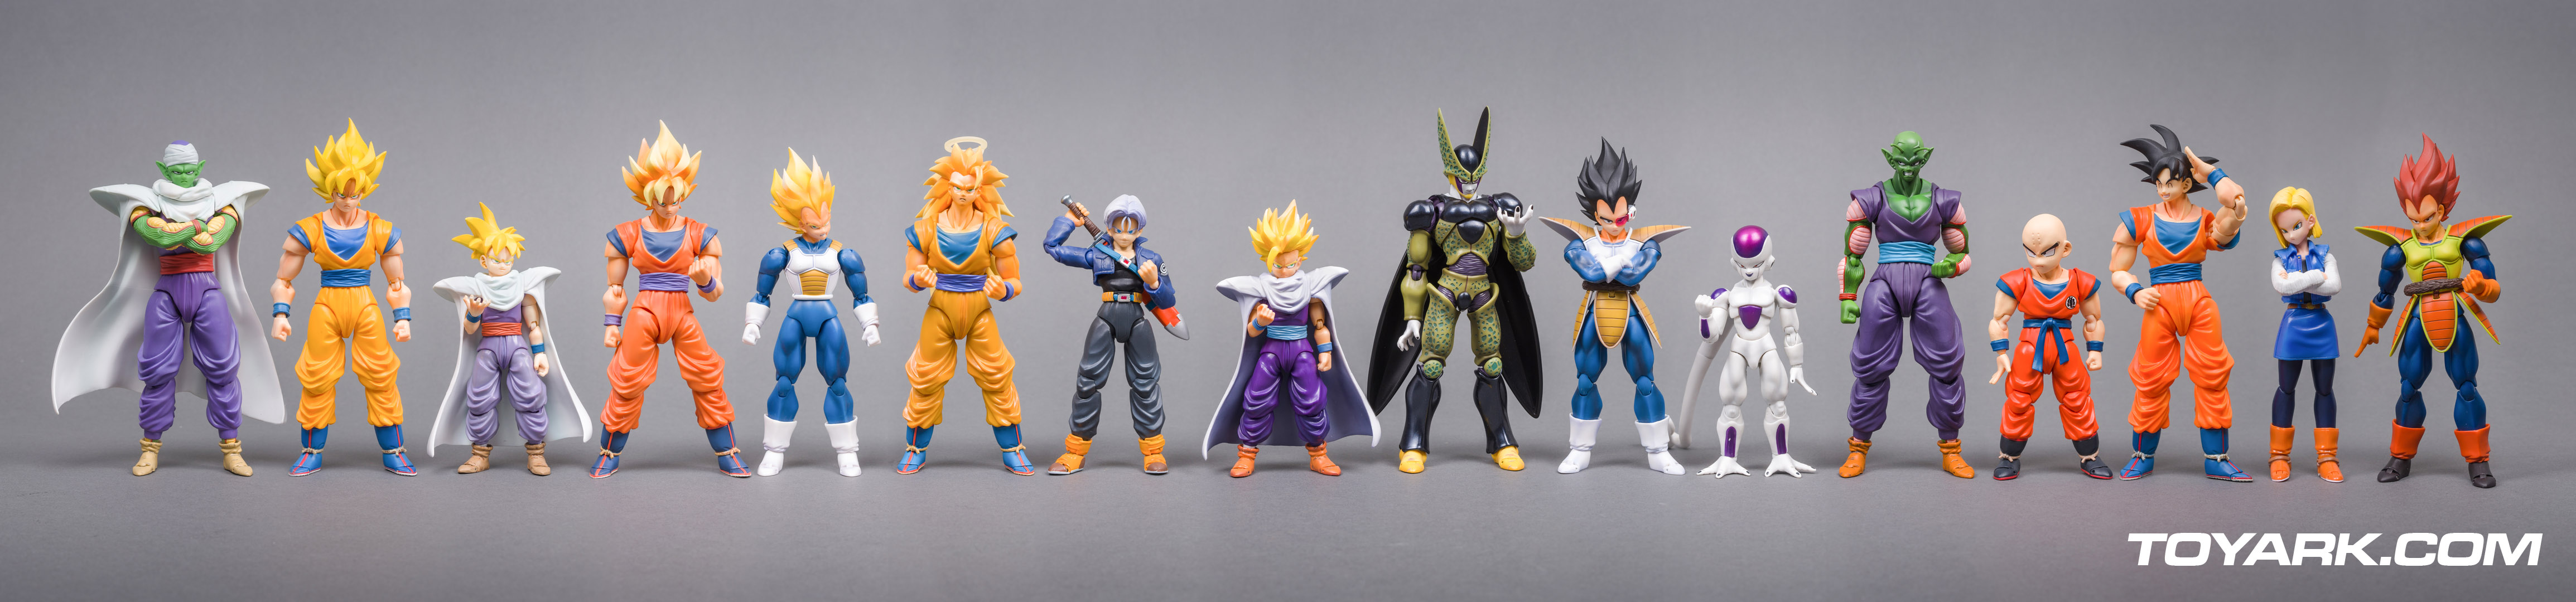 S.H. Figuarts Dragonball Z Line Up (Sept 2014)